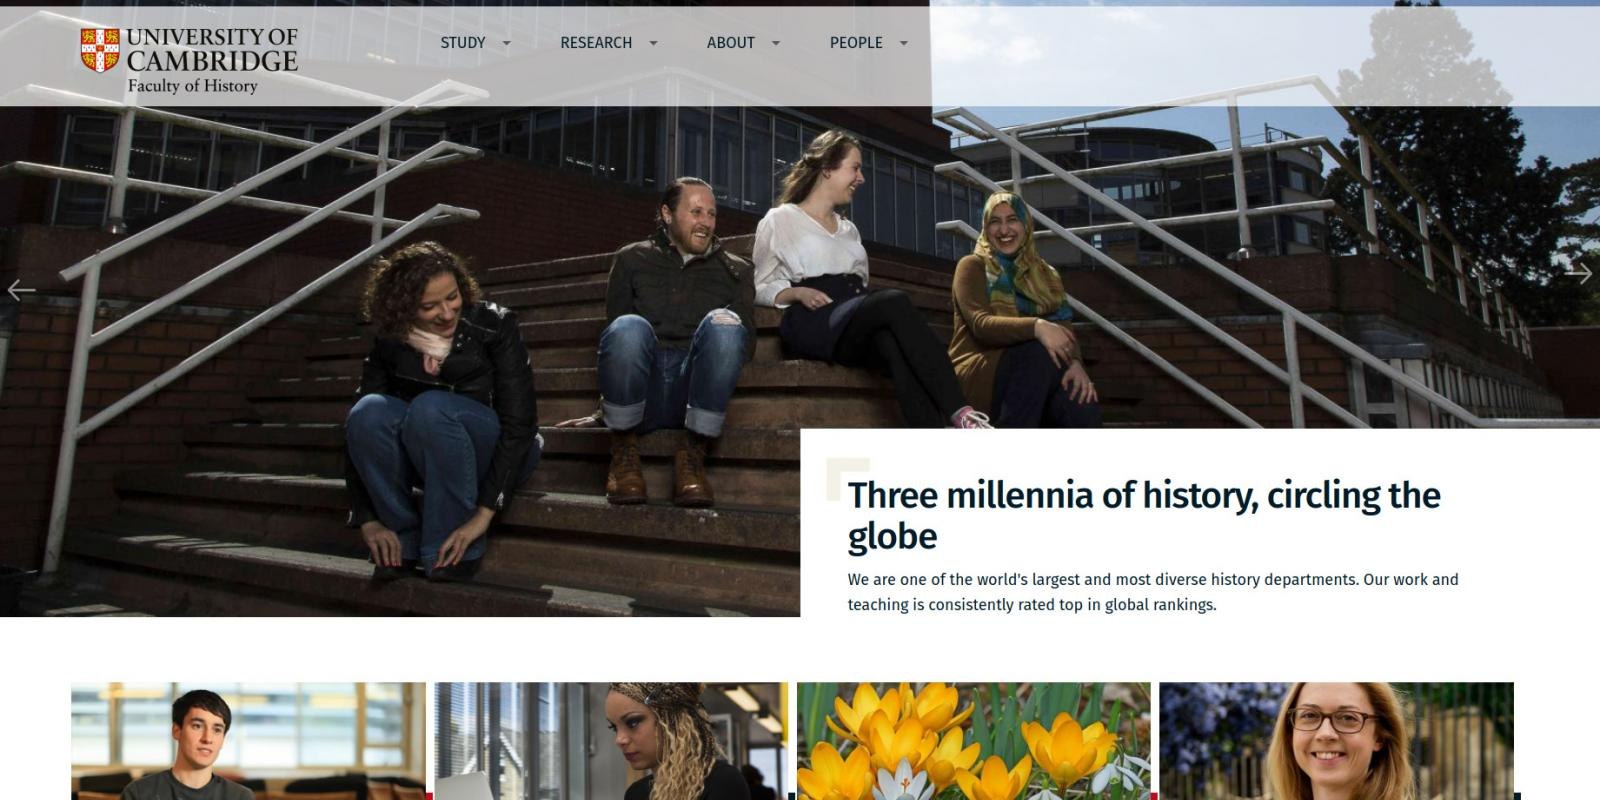 Faculty of History - University of Cambridge - website homepage